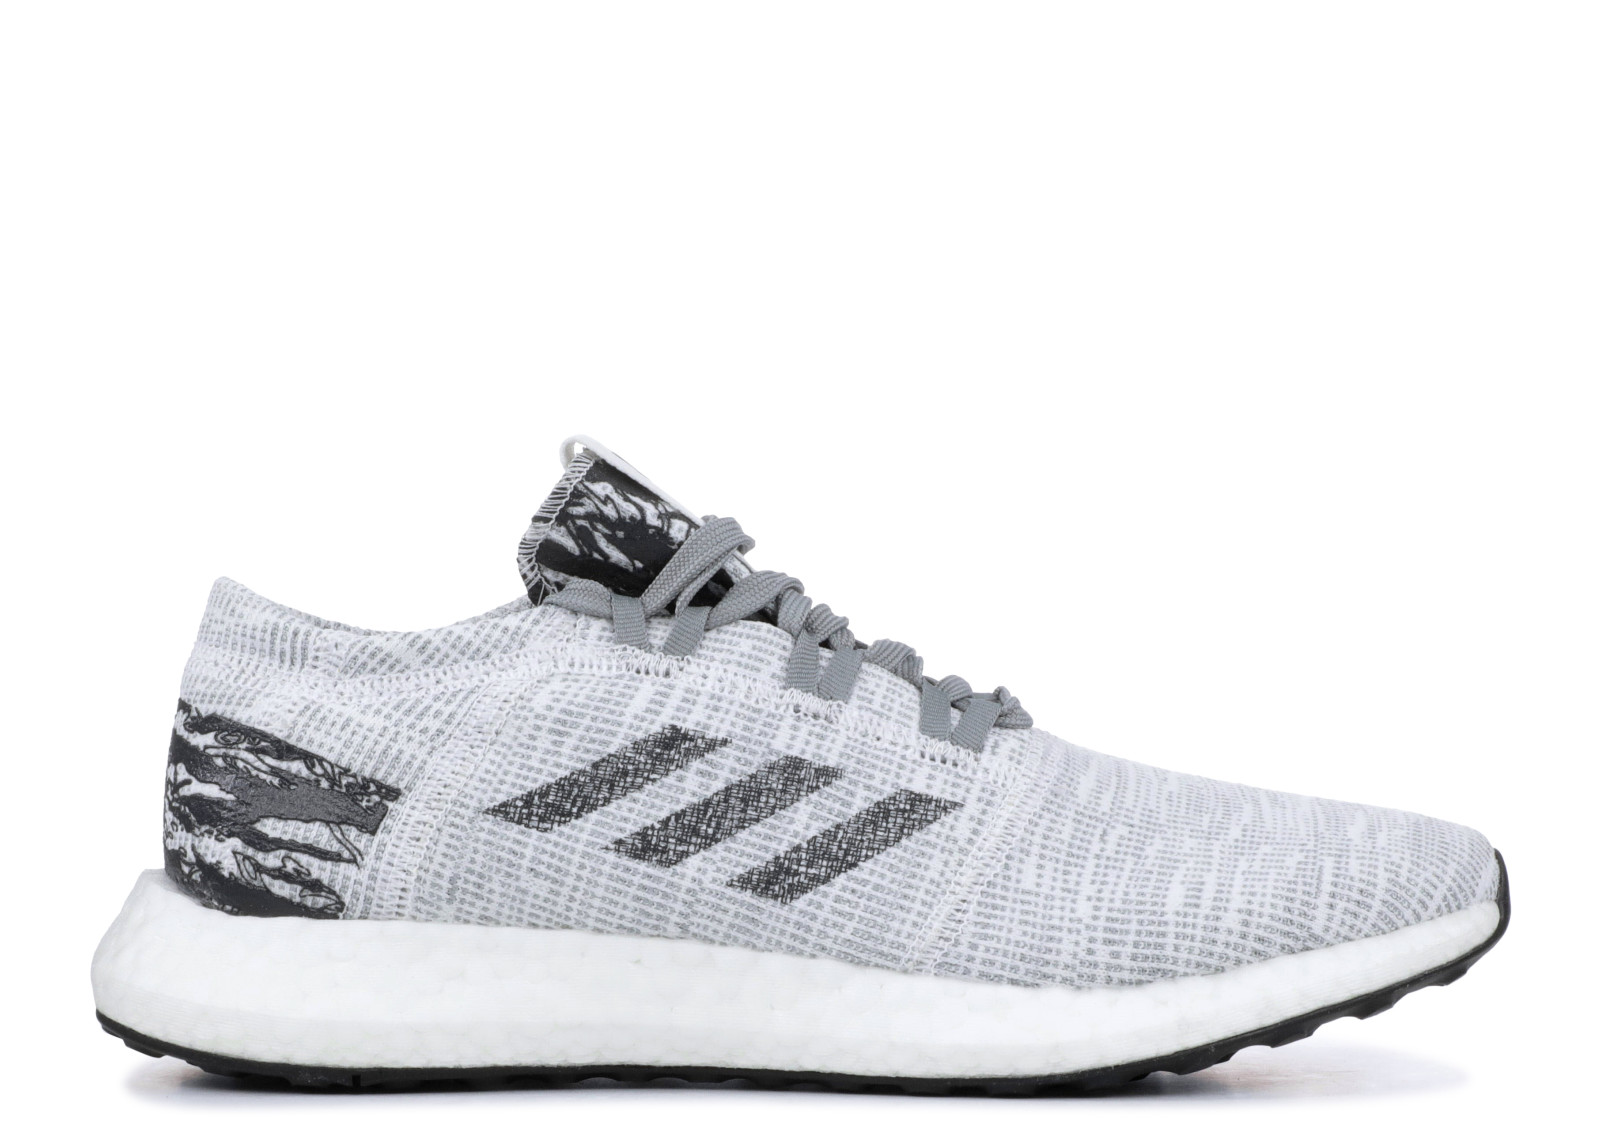 f44a227c6 adidas Pure Boost LTD Undefeated Performance Running